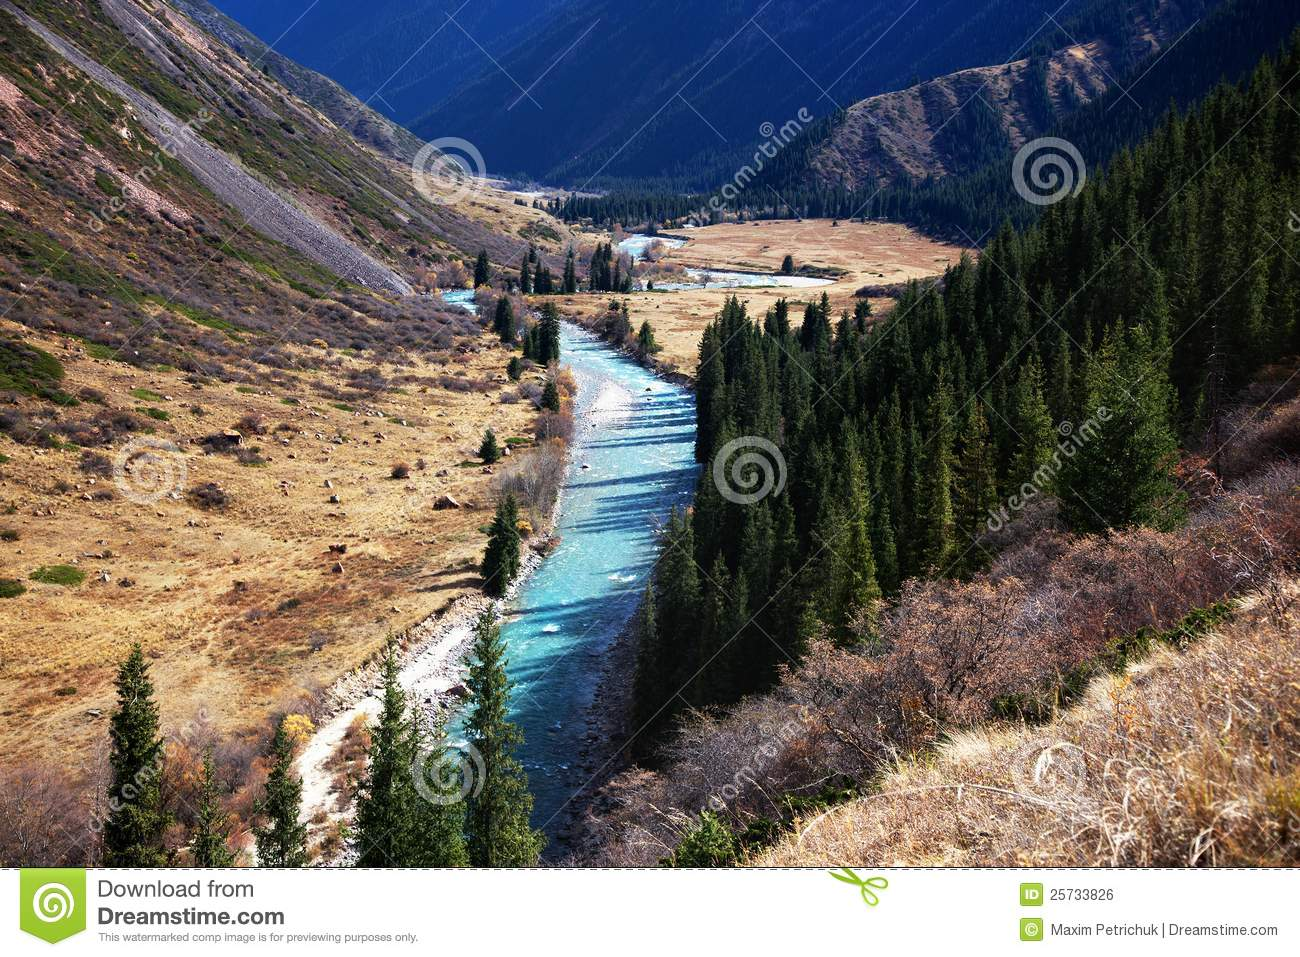 Chilik river in Kazakhstan